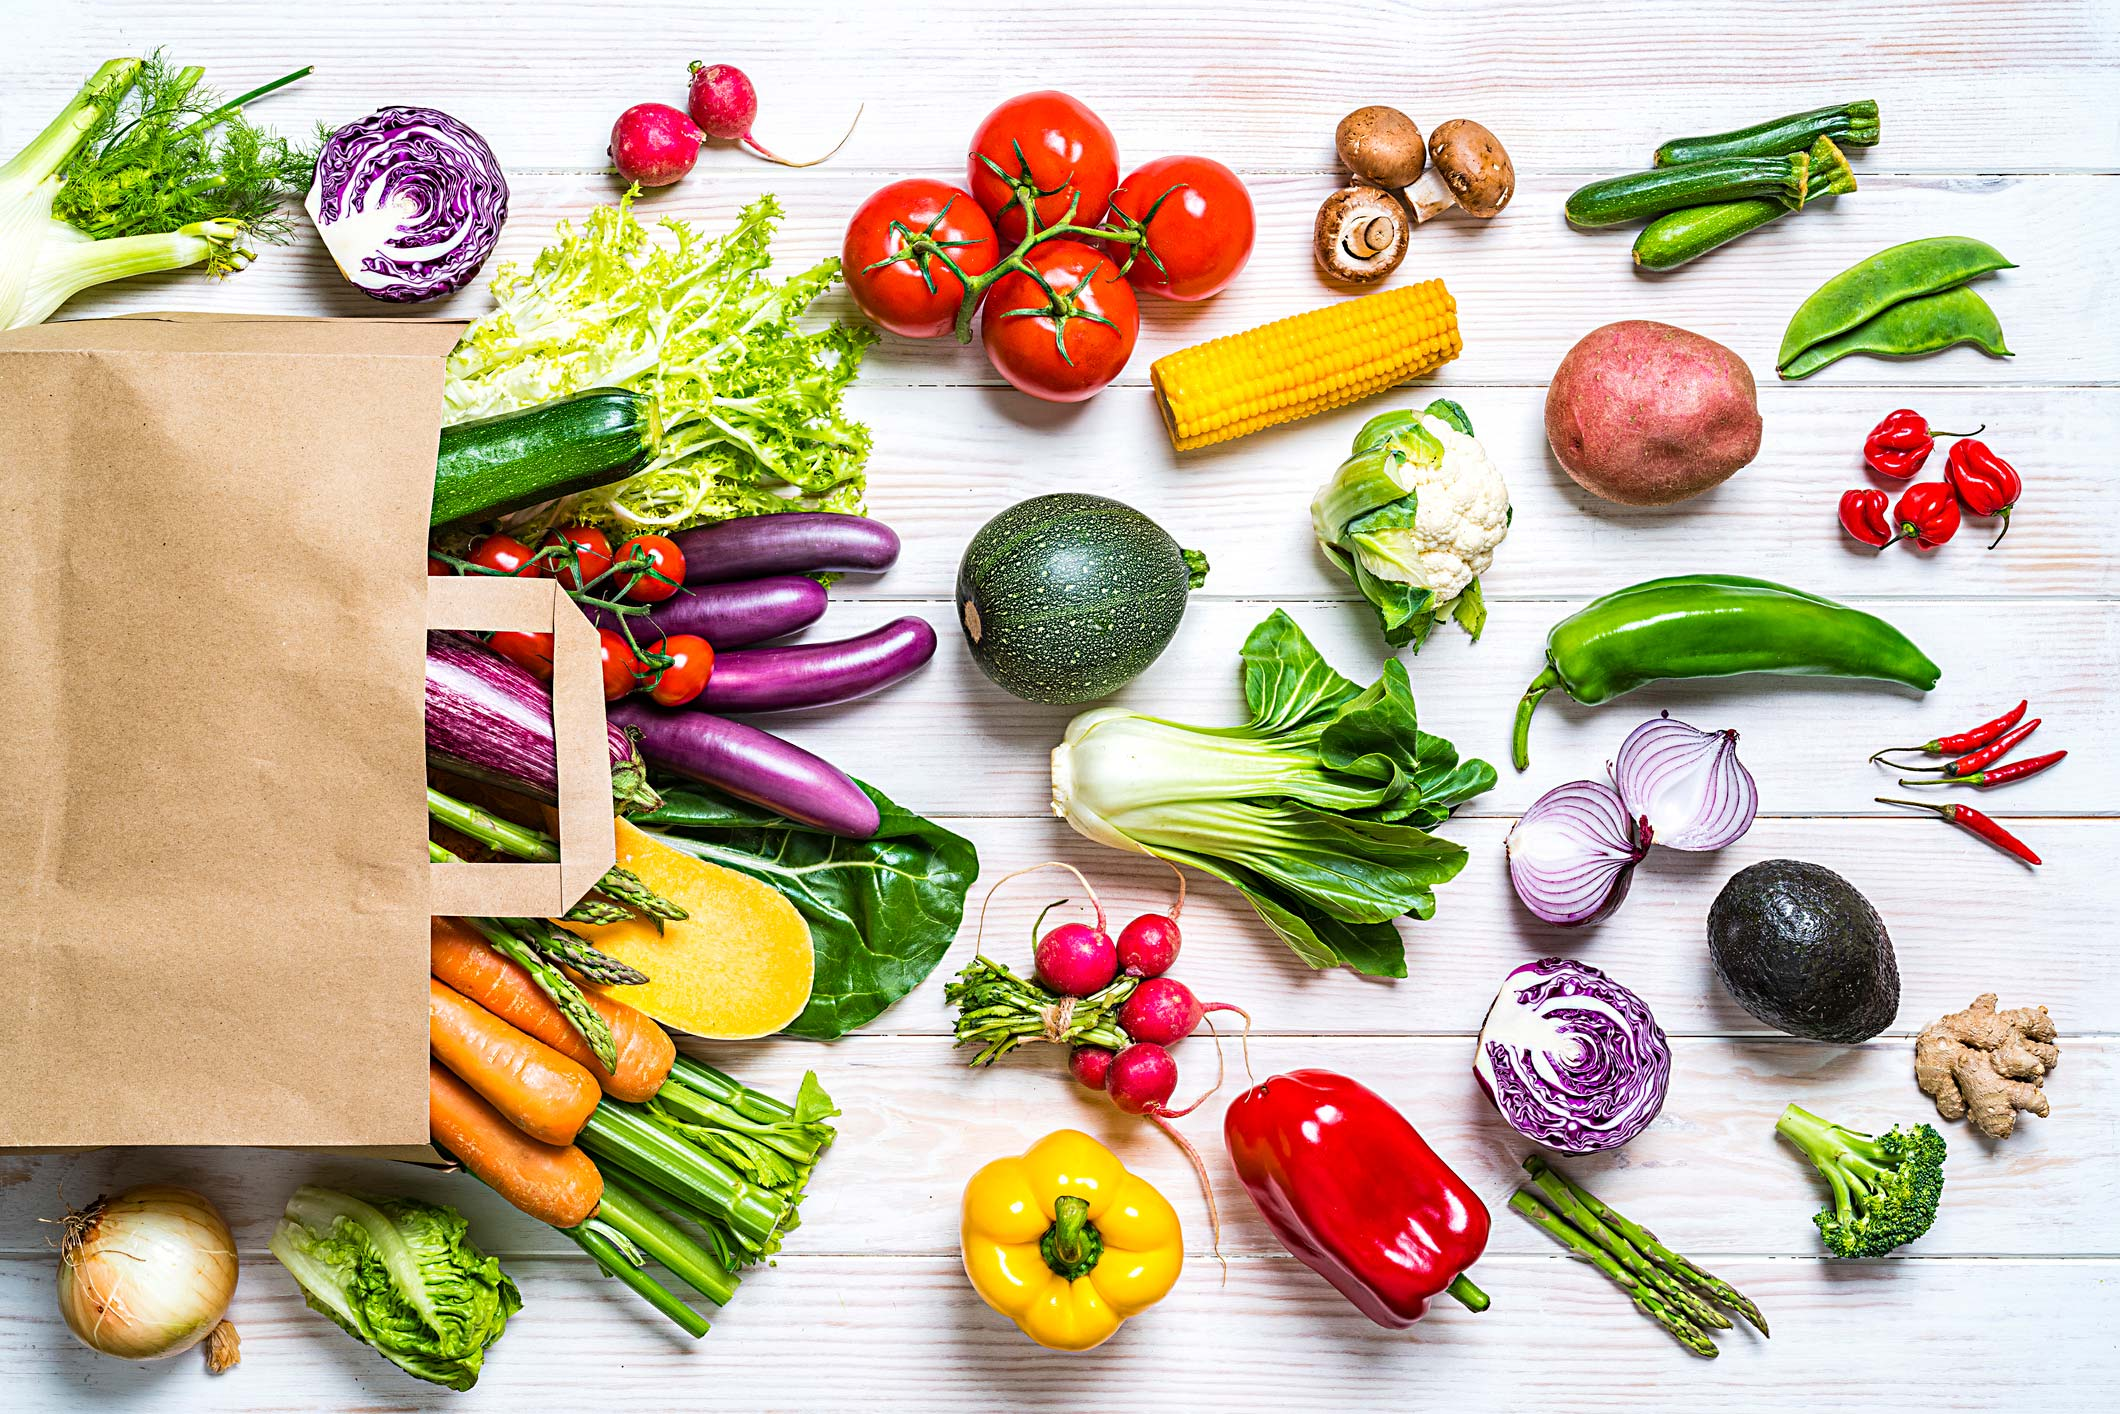 Fresh fruits and vegetables from the dirty dozen and clean 15 lists